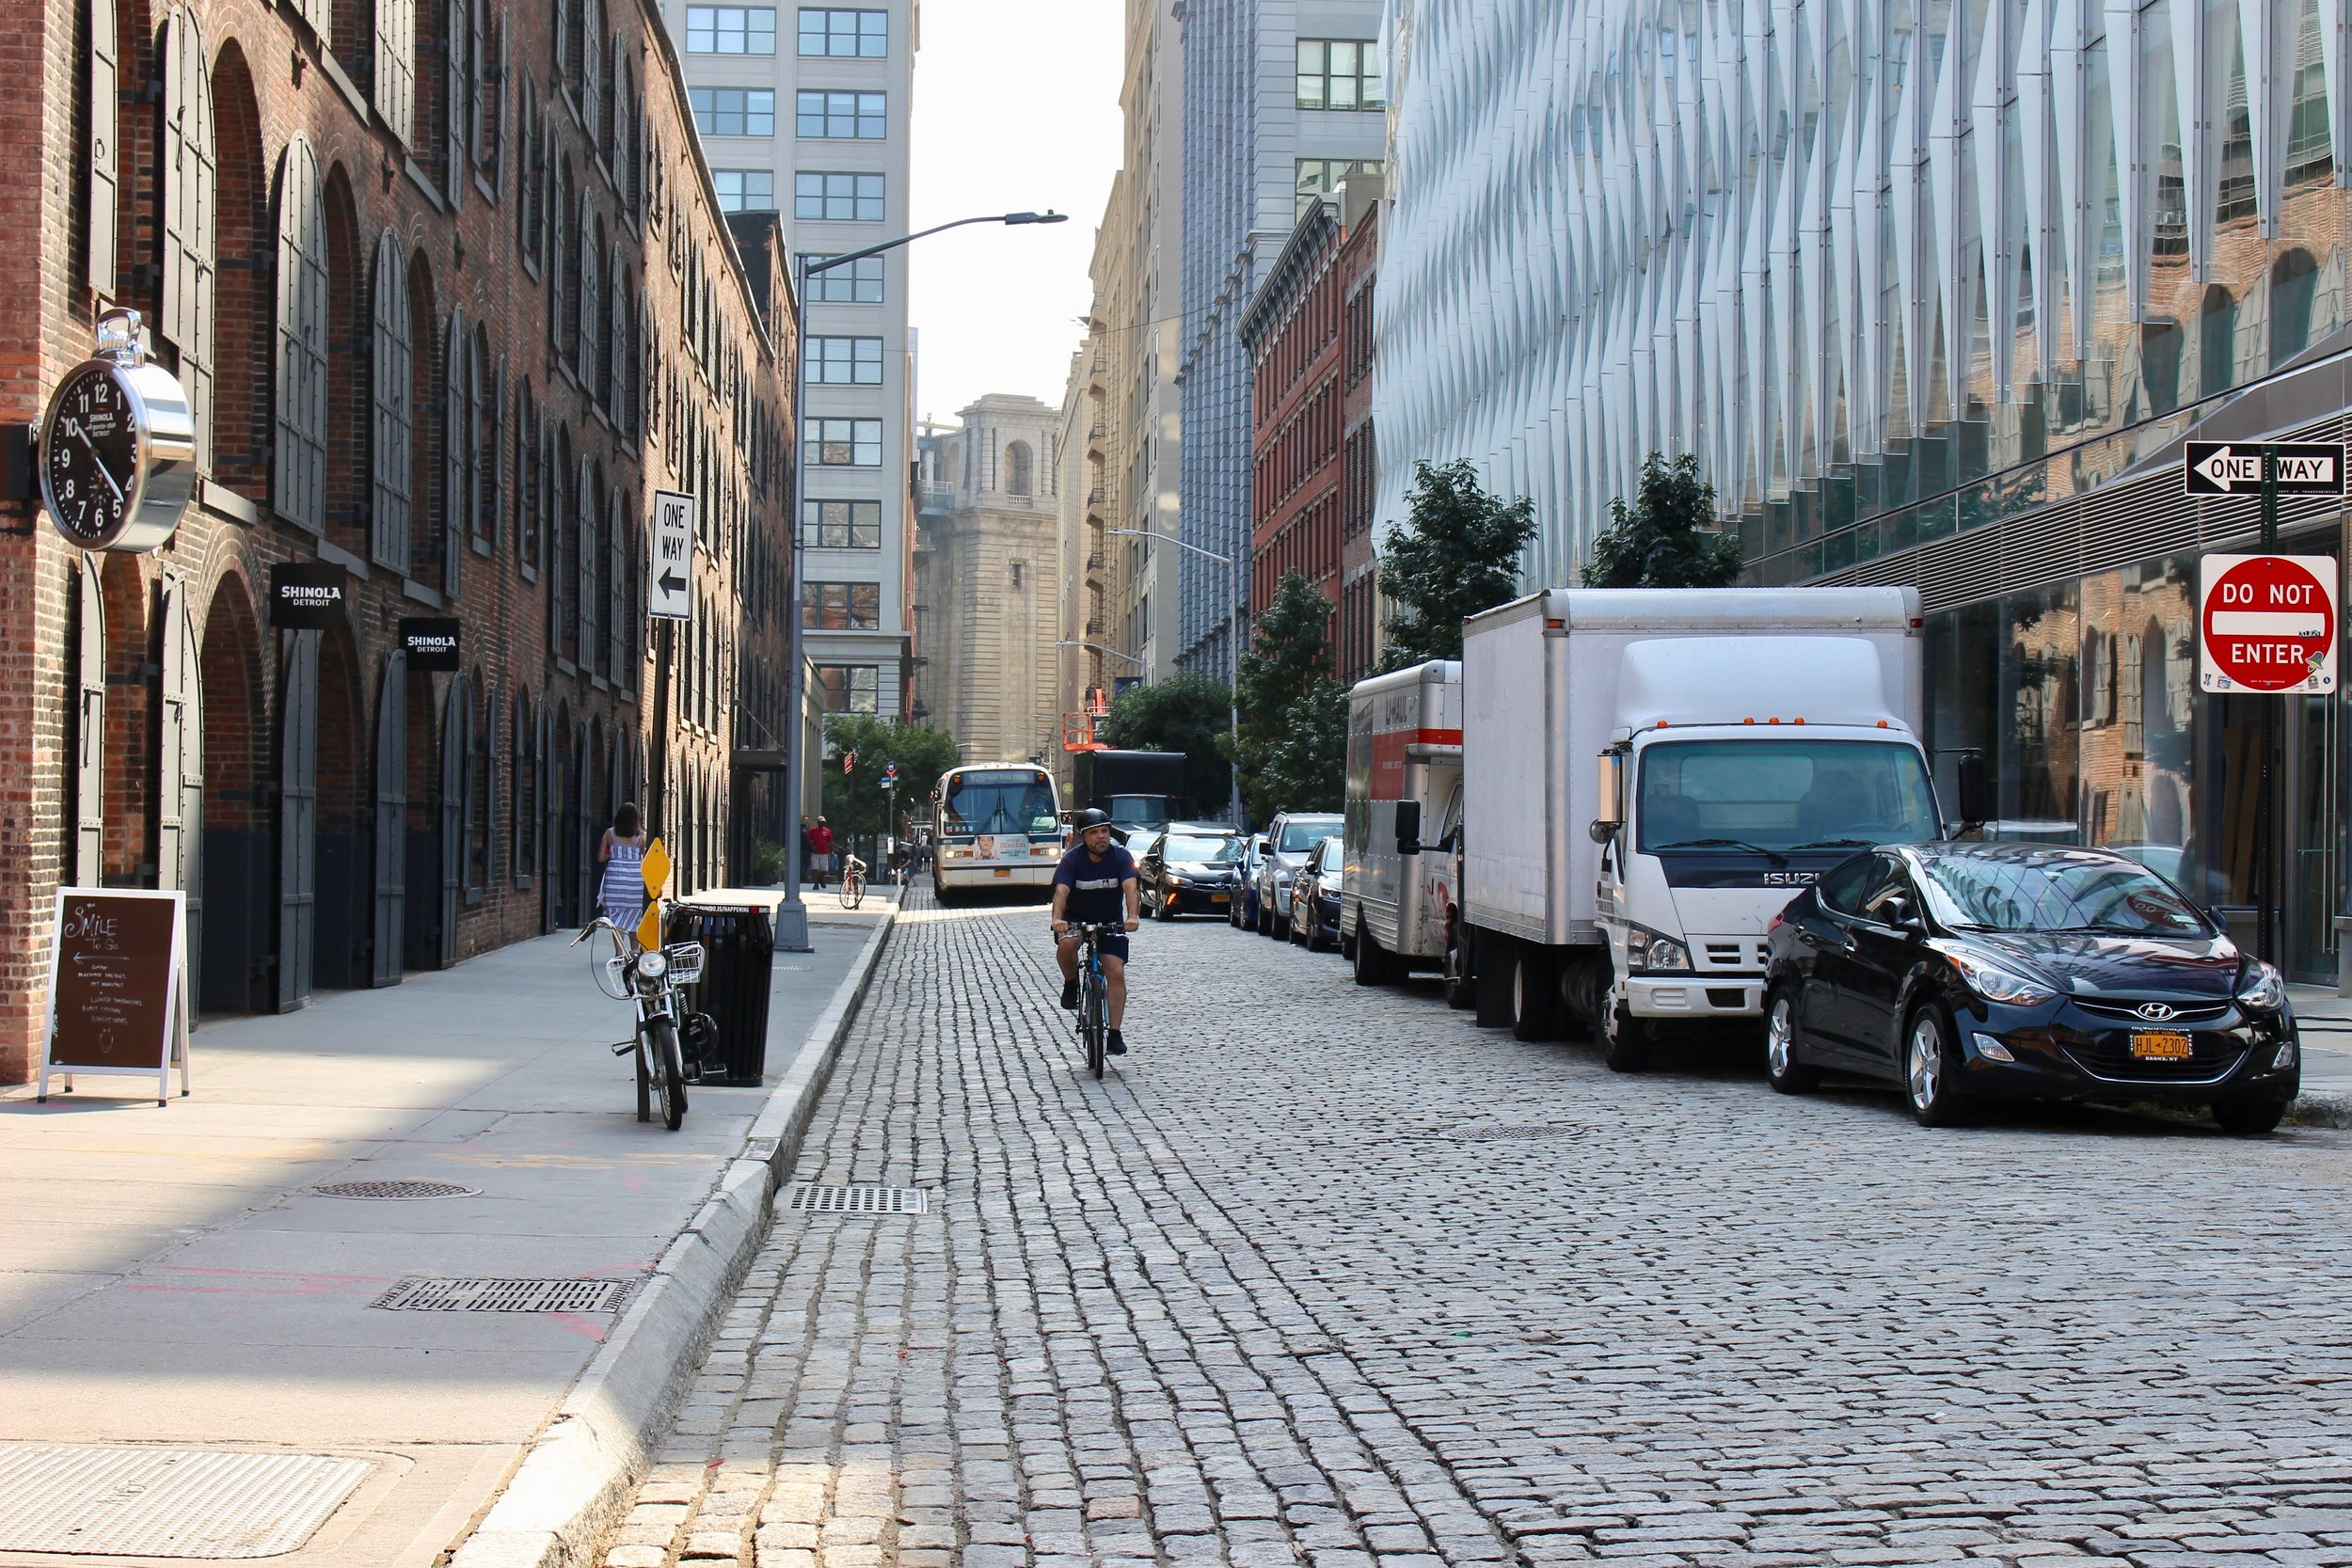 Looking north on Water Street. Past Main Street you can see the Manhattan Bridge stanchion. Note the cobble stone street, which is the case throughout DUMBO. Bicyclists, buses, cars, and pedestrians happily go about their business on the narrow DUMBO streets.